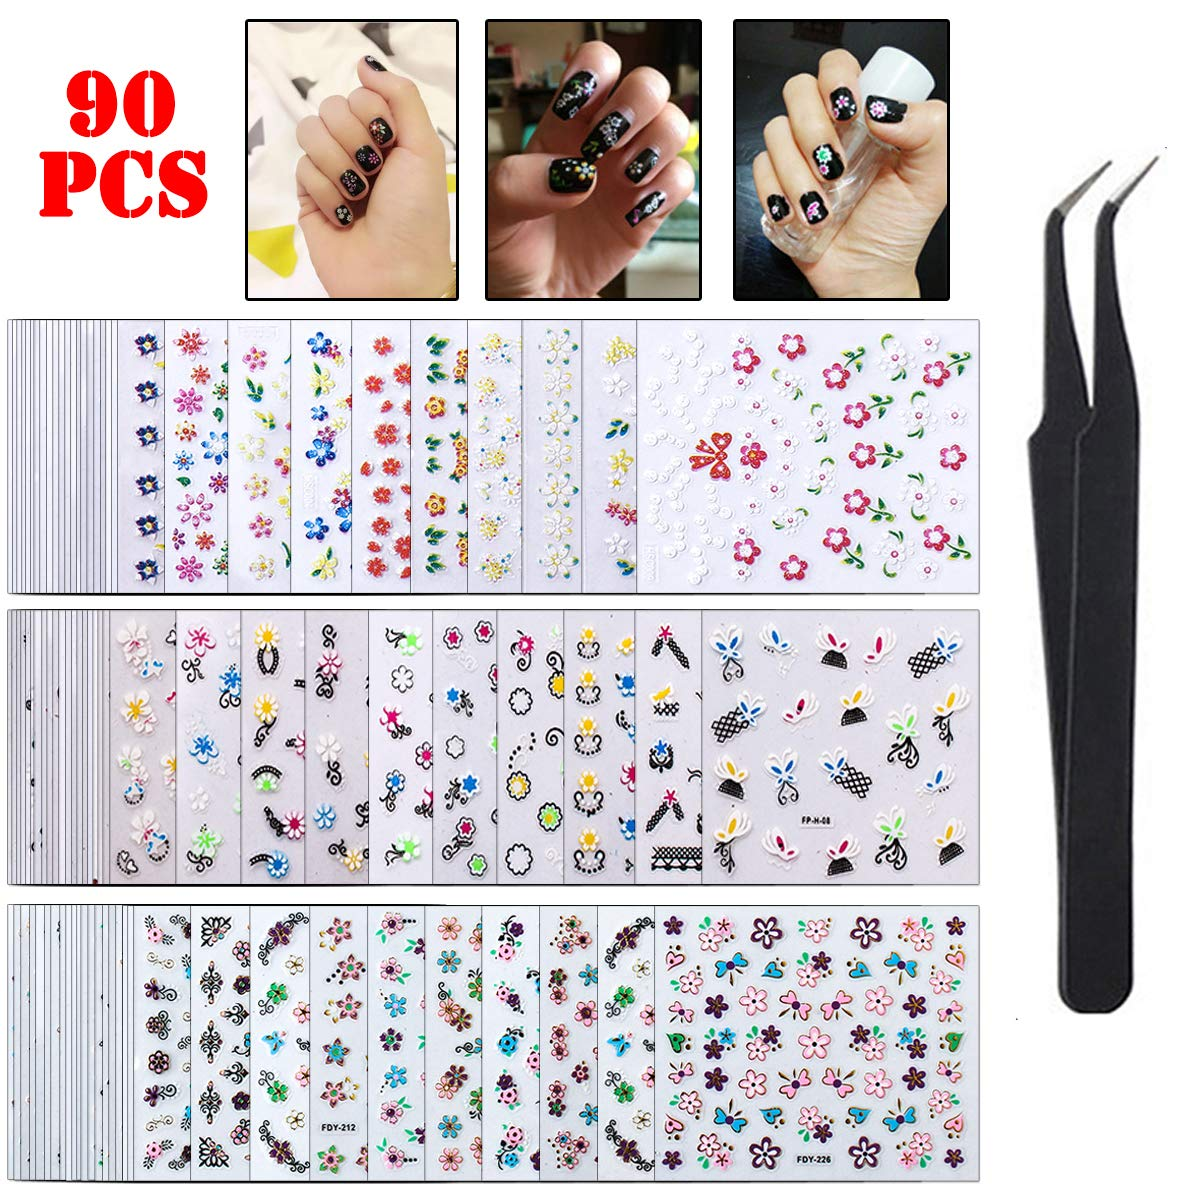 WOKOTO 90 Sheets Nail Art Stickers Tips Mix-Color Flower Design Adhesive Nail Decals 3D Manicure Decoration For Women With 1Pc Tweezers by WOKOTO